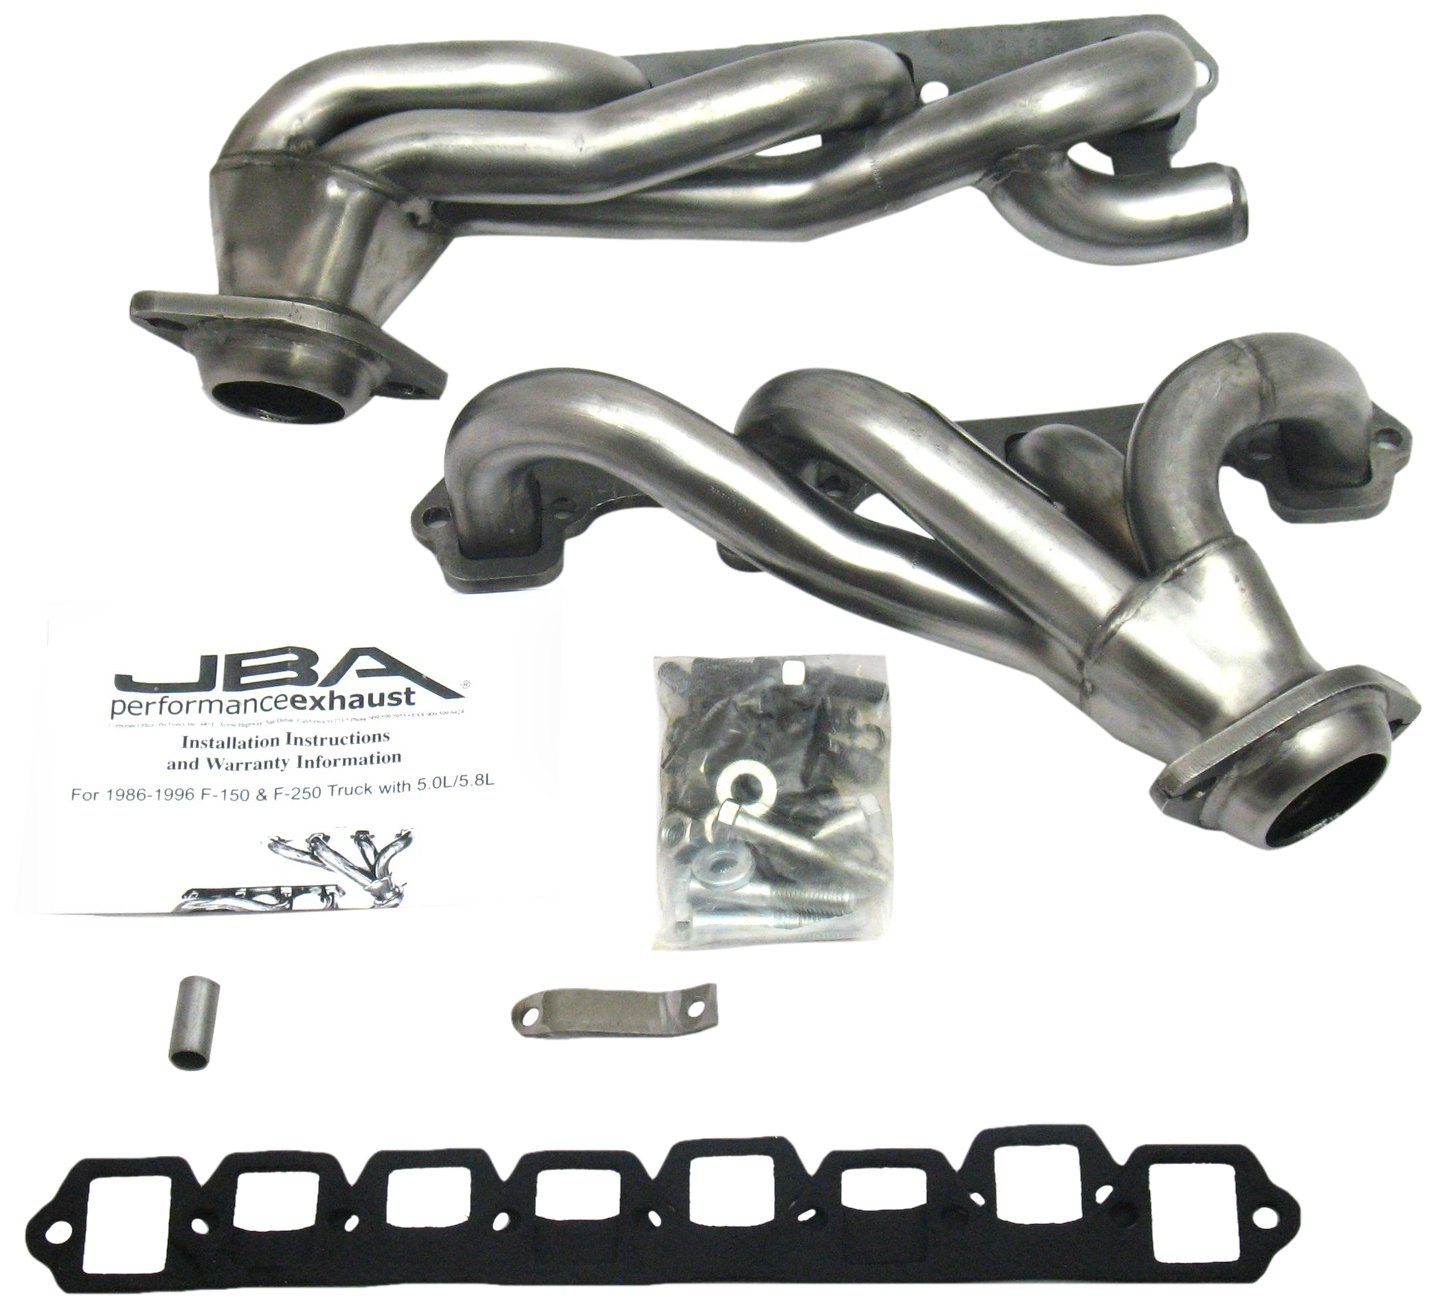 JBA 1628S 1-1//2 Shorty Stainless Steel Exhaust Header for Ford Truck 5.8L 86-96